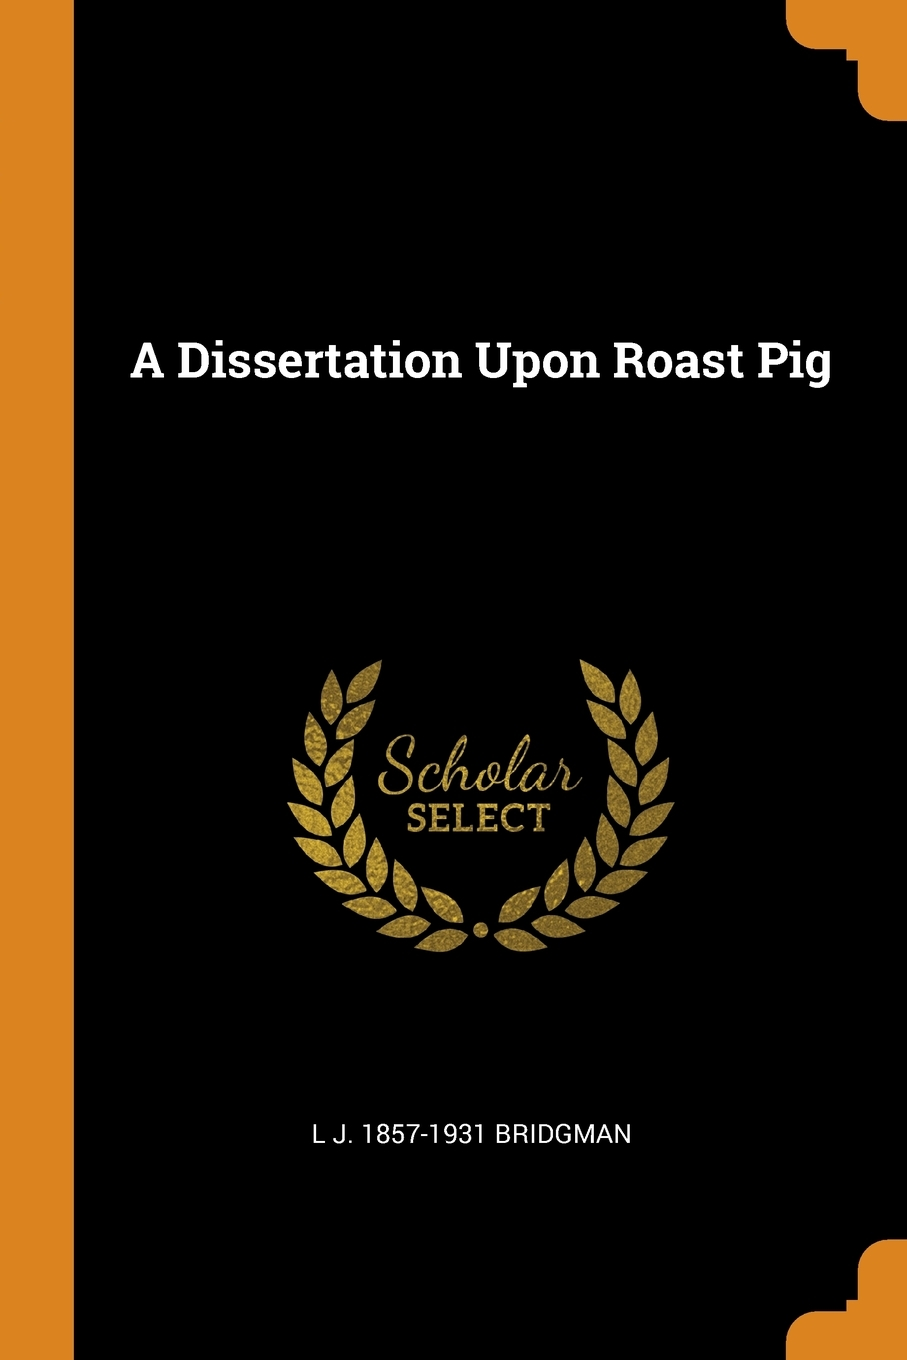 Dissertation upon roast pig summary